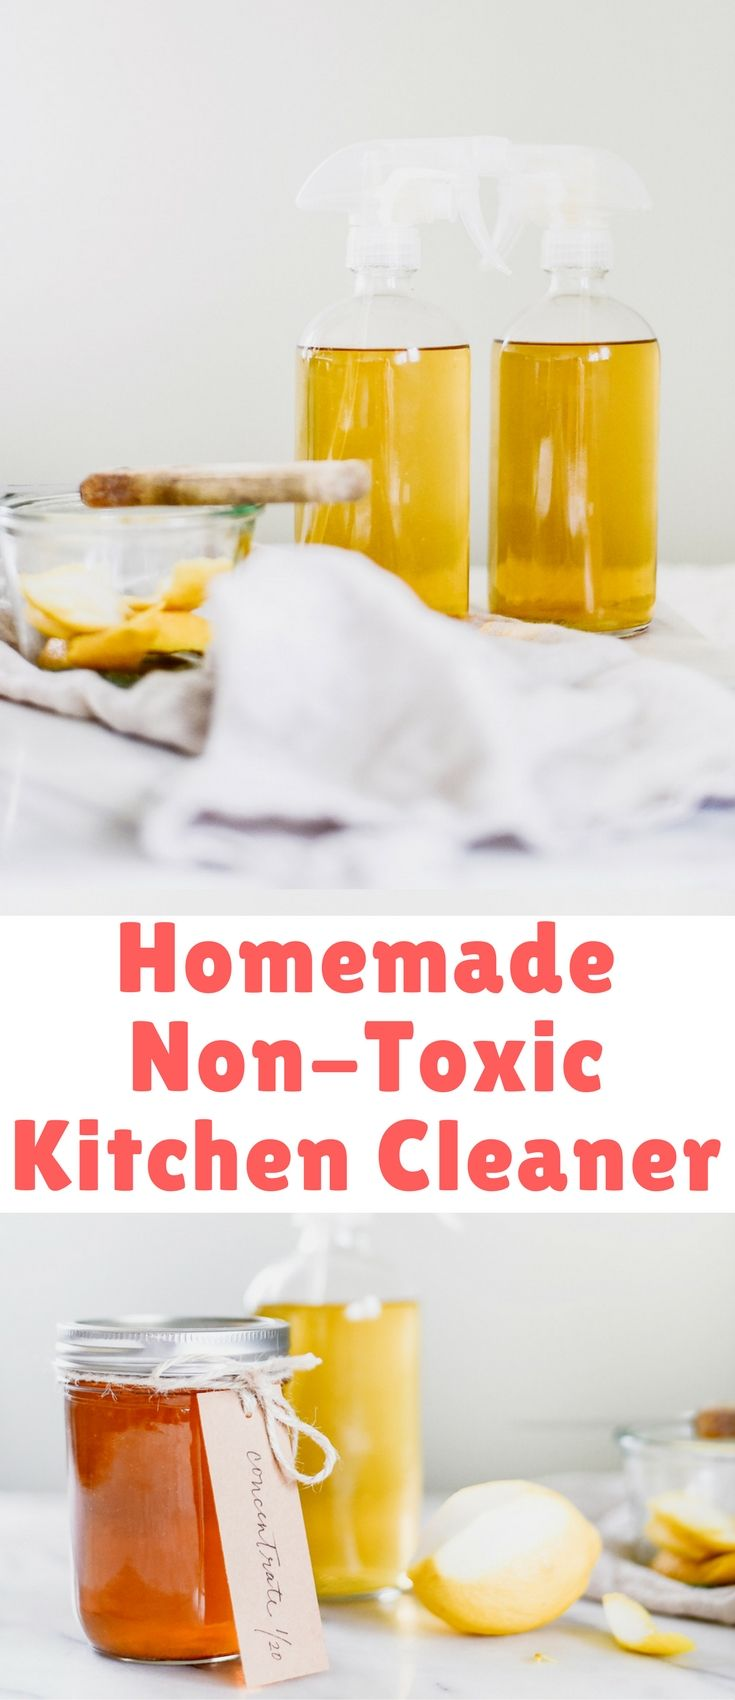 If you have oranges & vinegar, you can make this non-toxic homemade ...